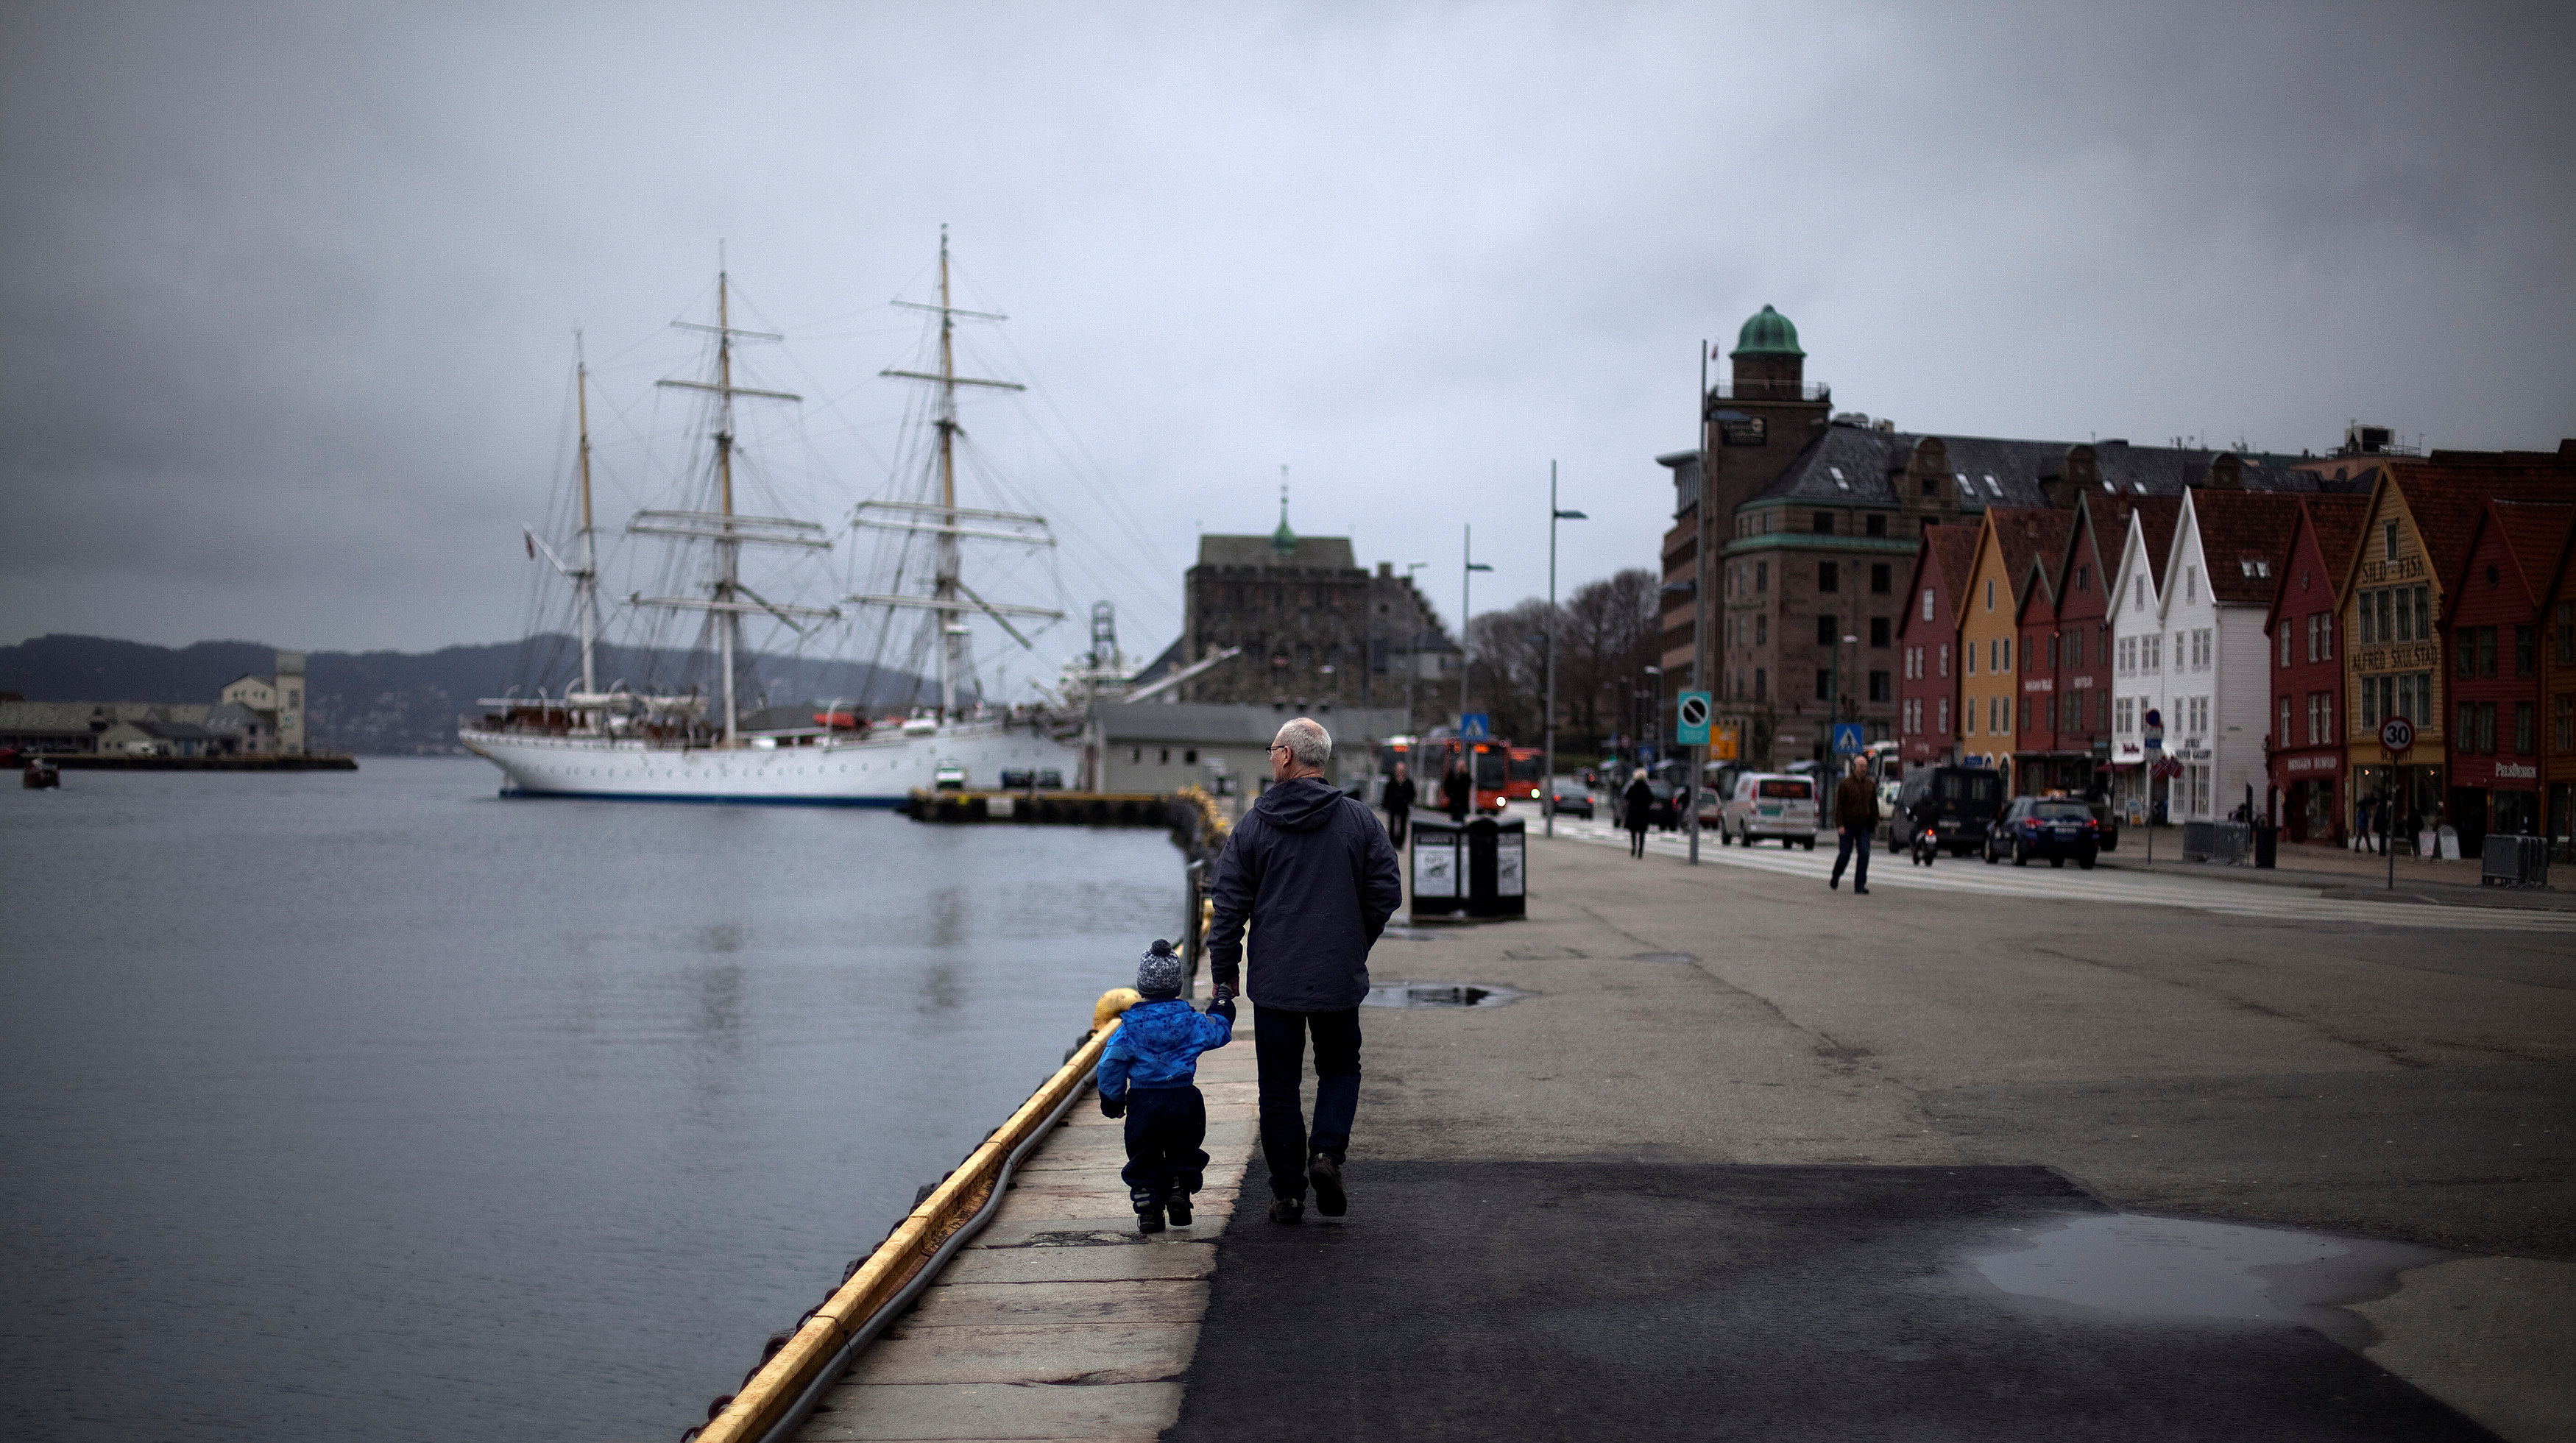 FILE PHOTO -  A man walks with a child near the marina in downtown Bergen, southwestern Norway, March 20, 2012.  REUTERS/Stoyan Nenov/File Photo